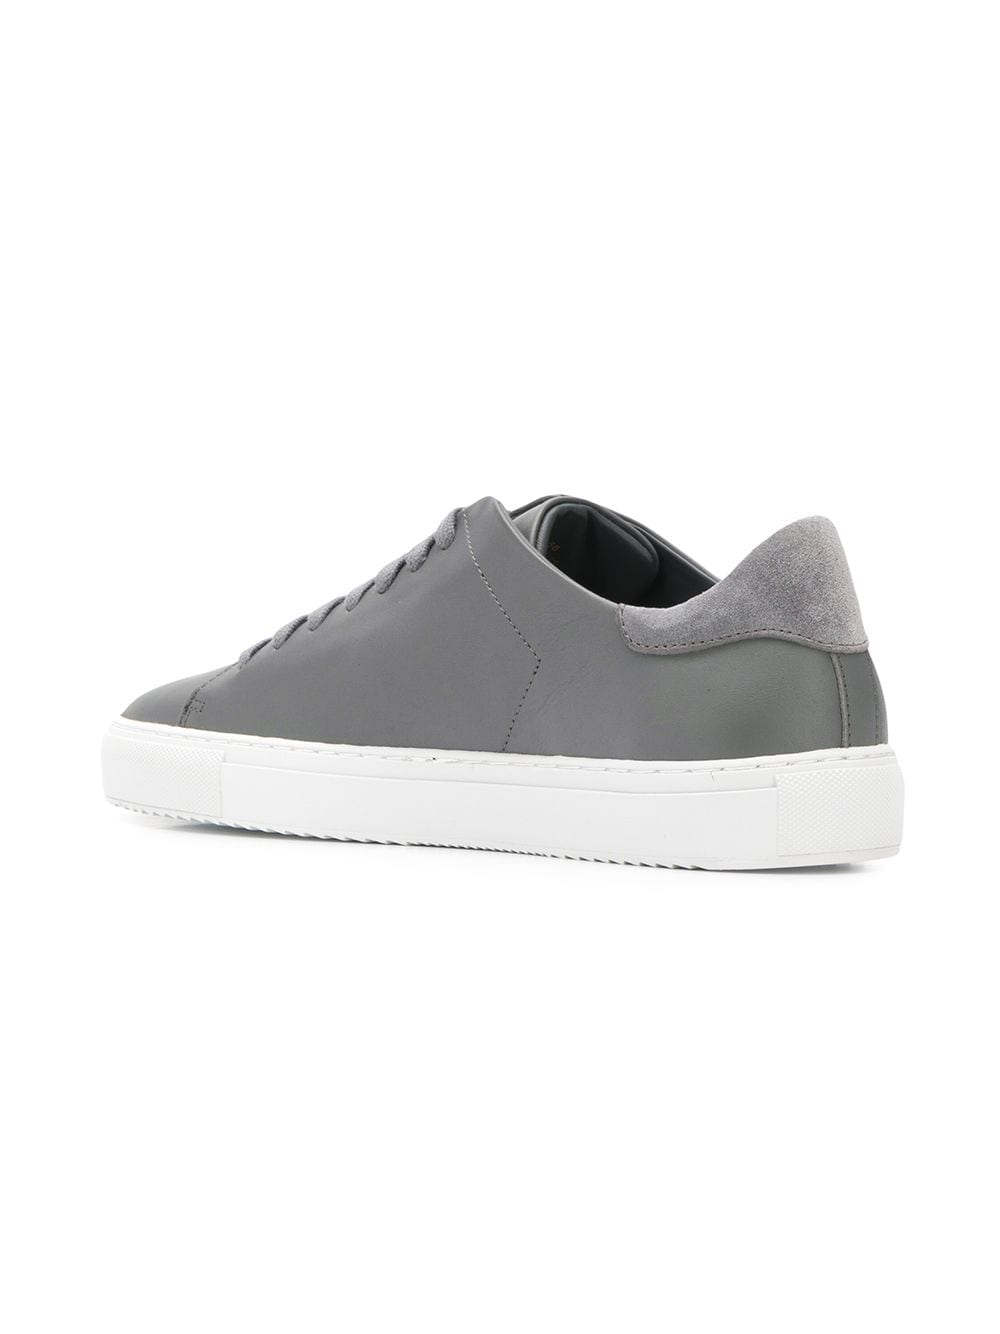 Picture of Axel Arigato | Classic Low-Top Sneakers